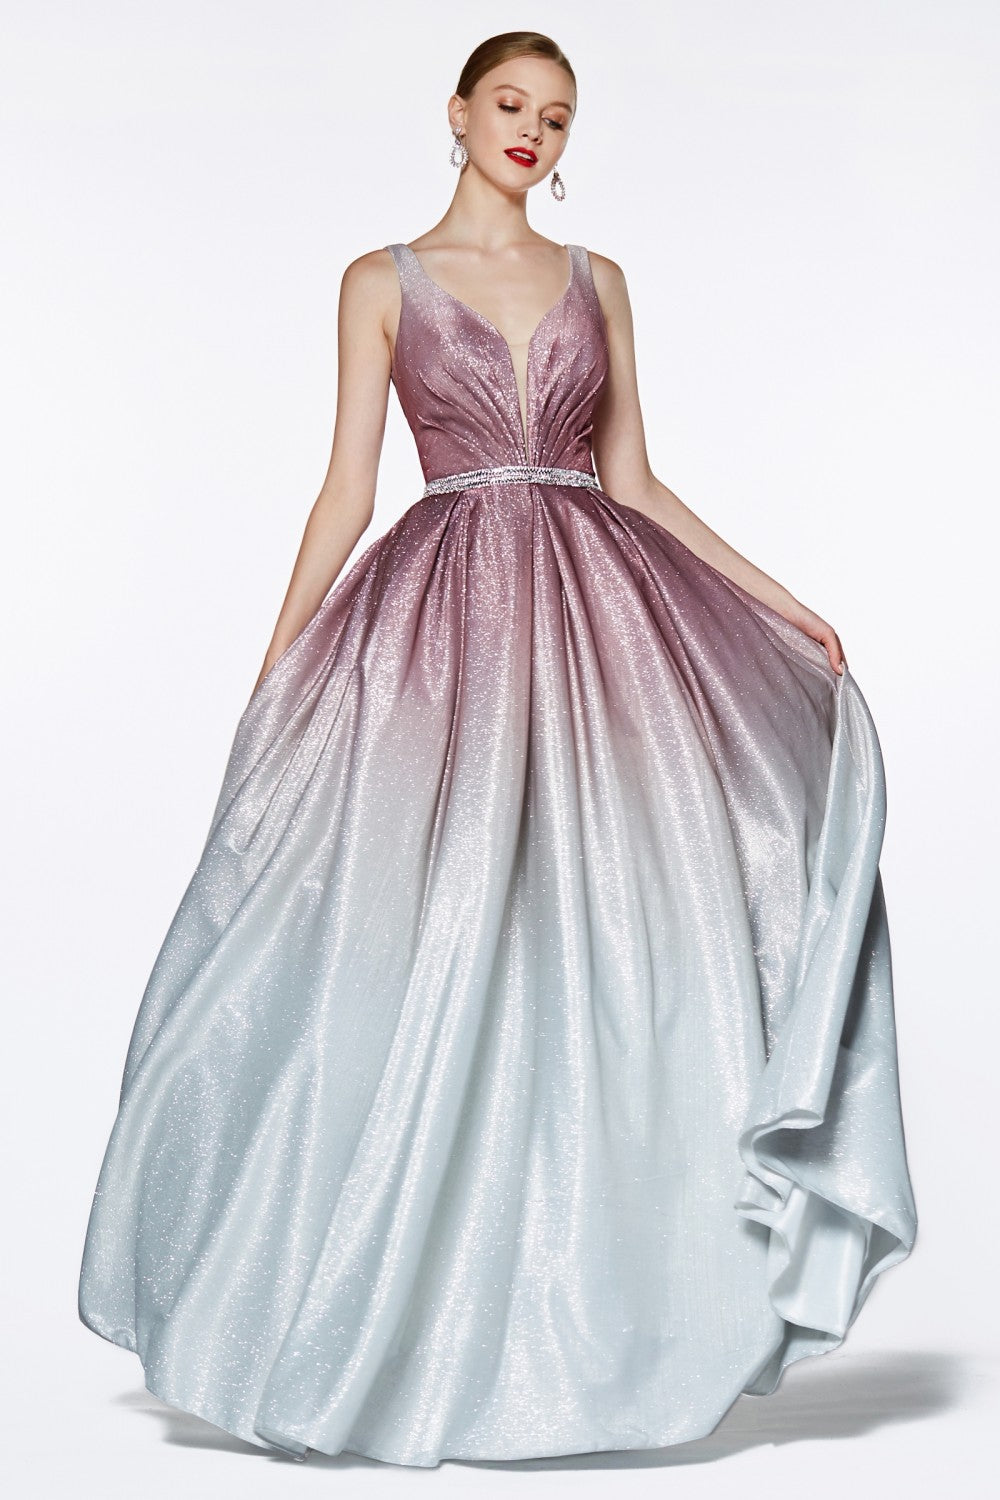 Ombre Glitter Ball Gown With Deep Plunge Neckline And Beaded Belt